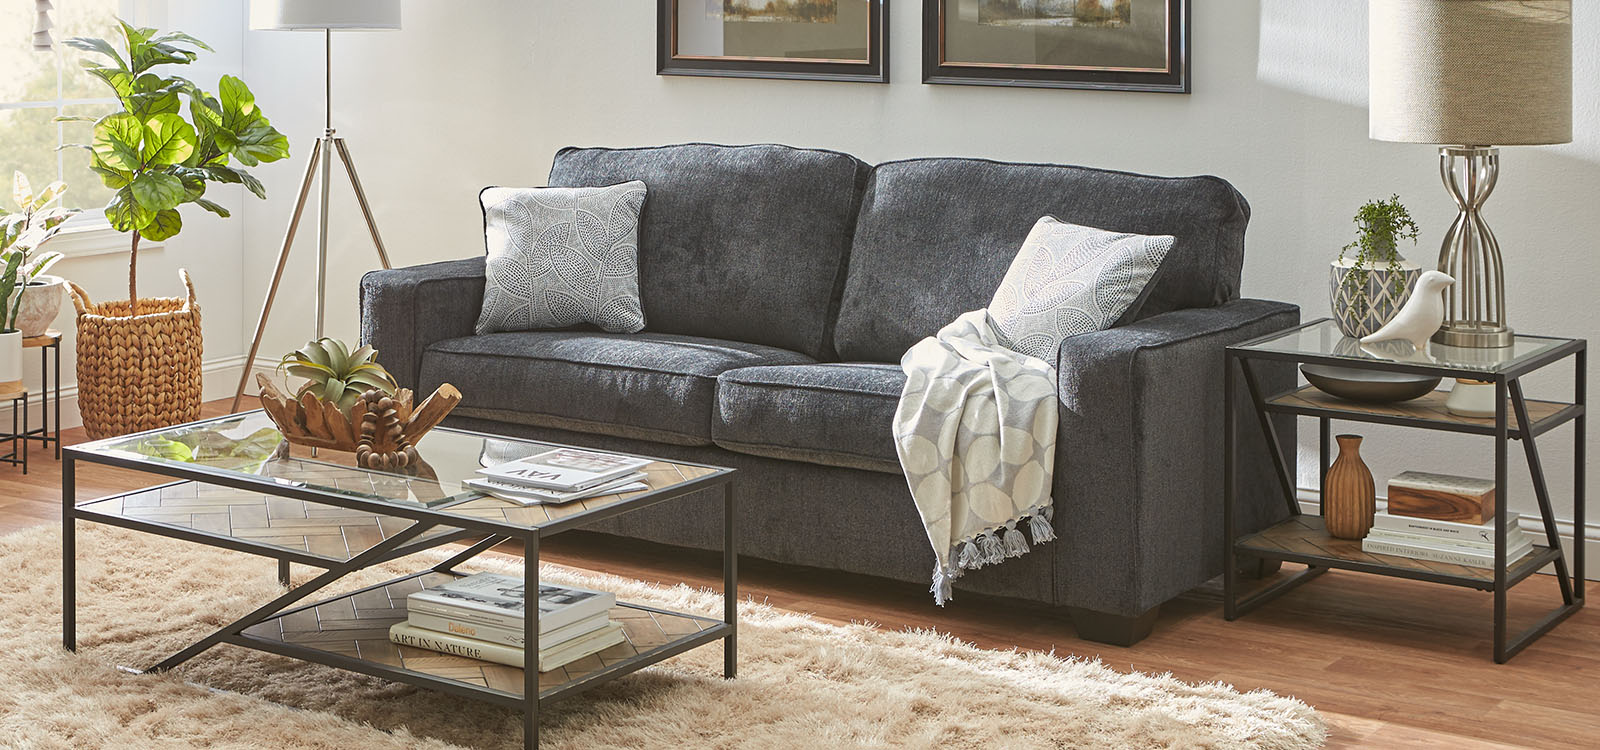 Furniture Stores Near Me With Layaway Slumberland Furniture Slumberland Online Store